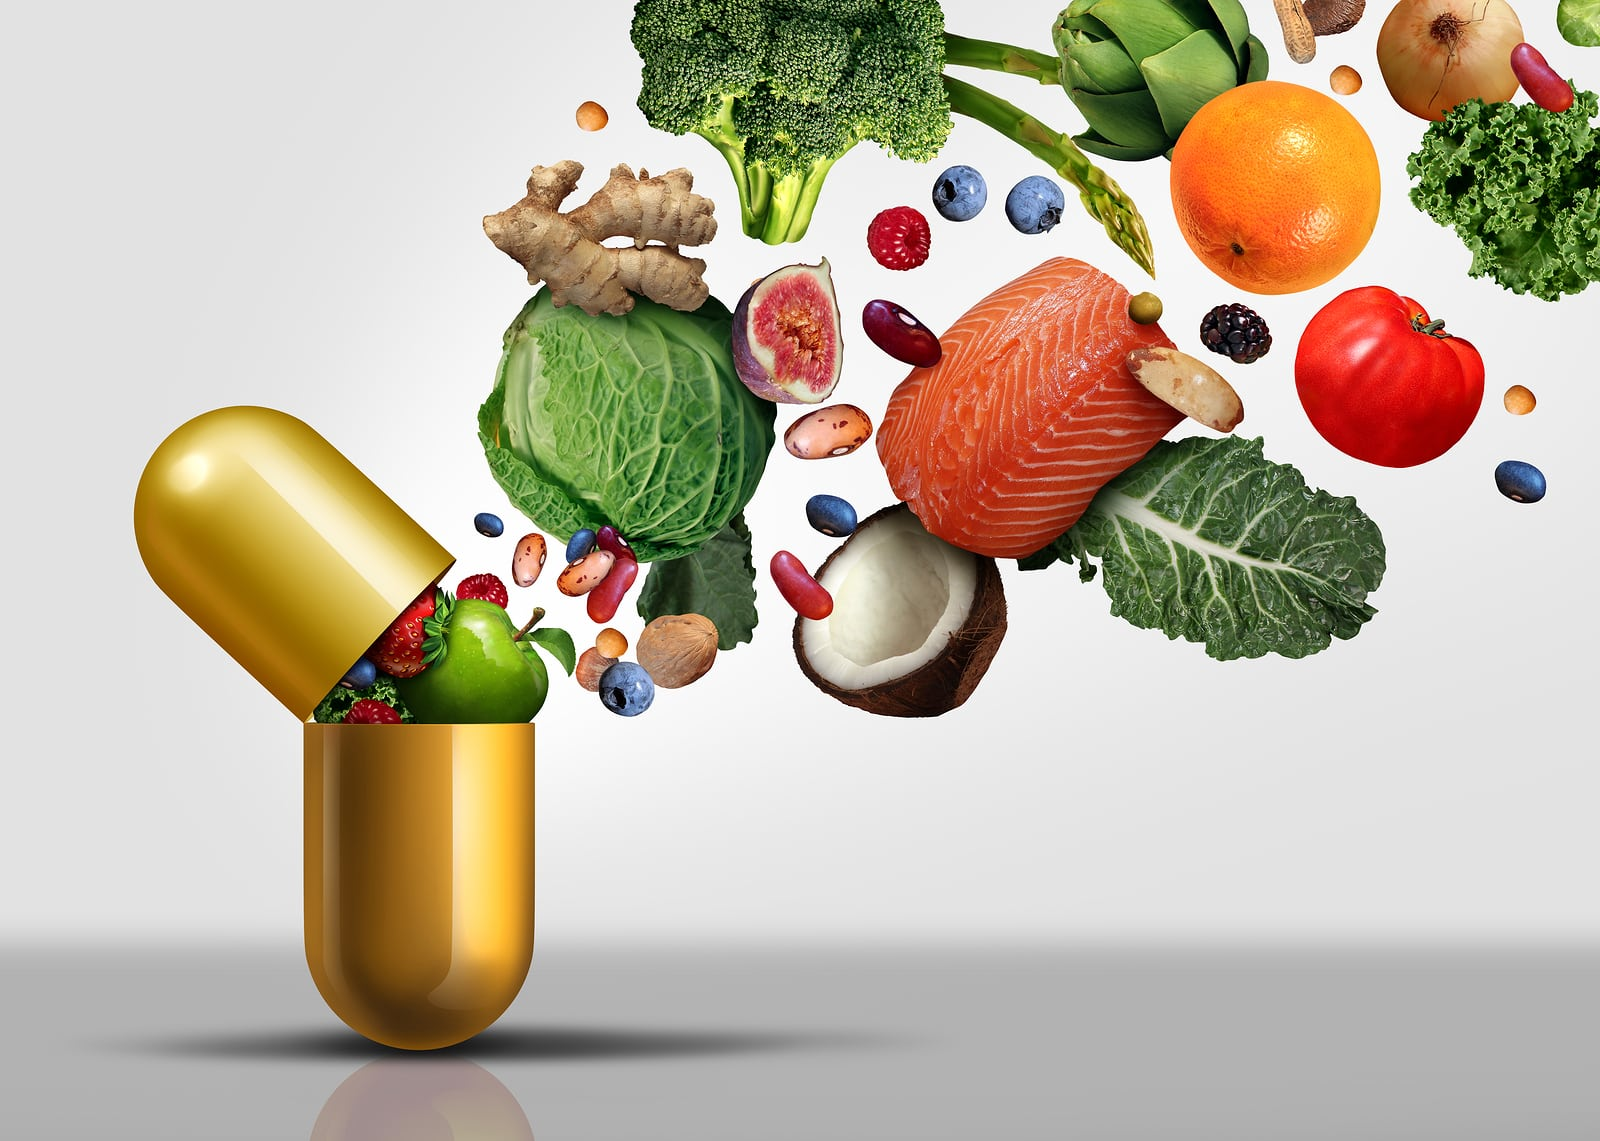 What vitamins should a woman take on a daily basis